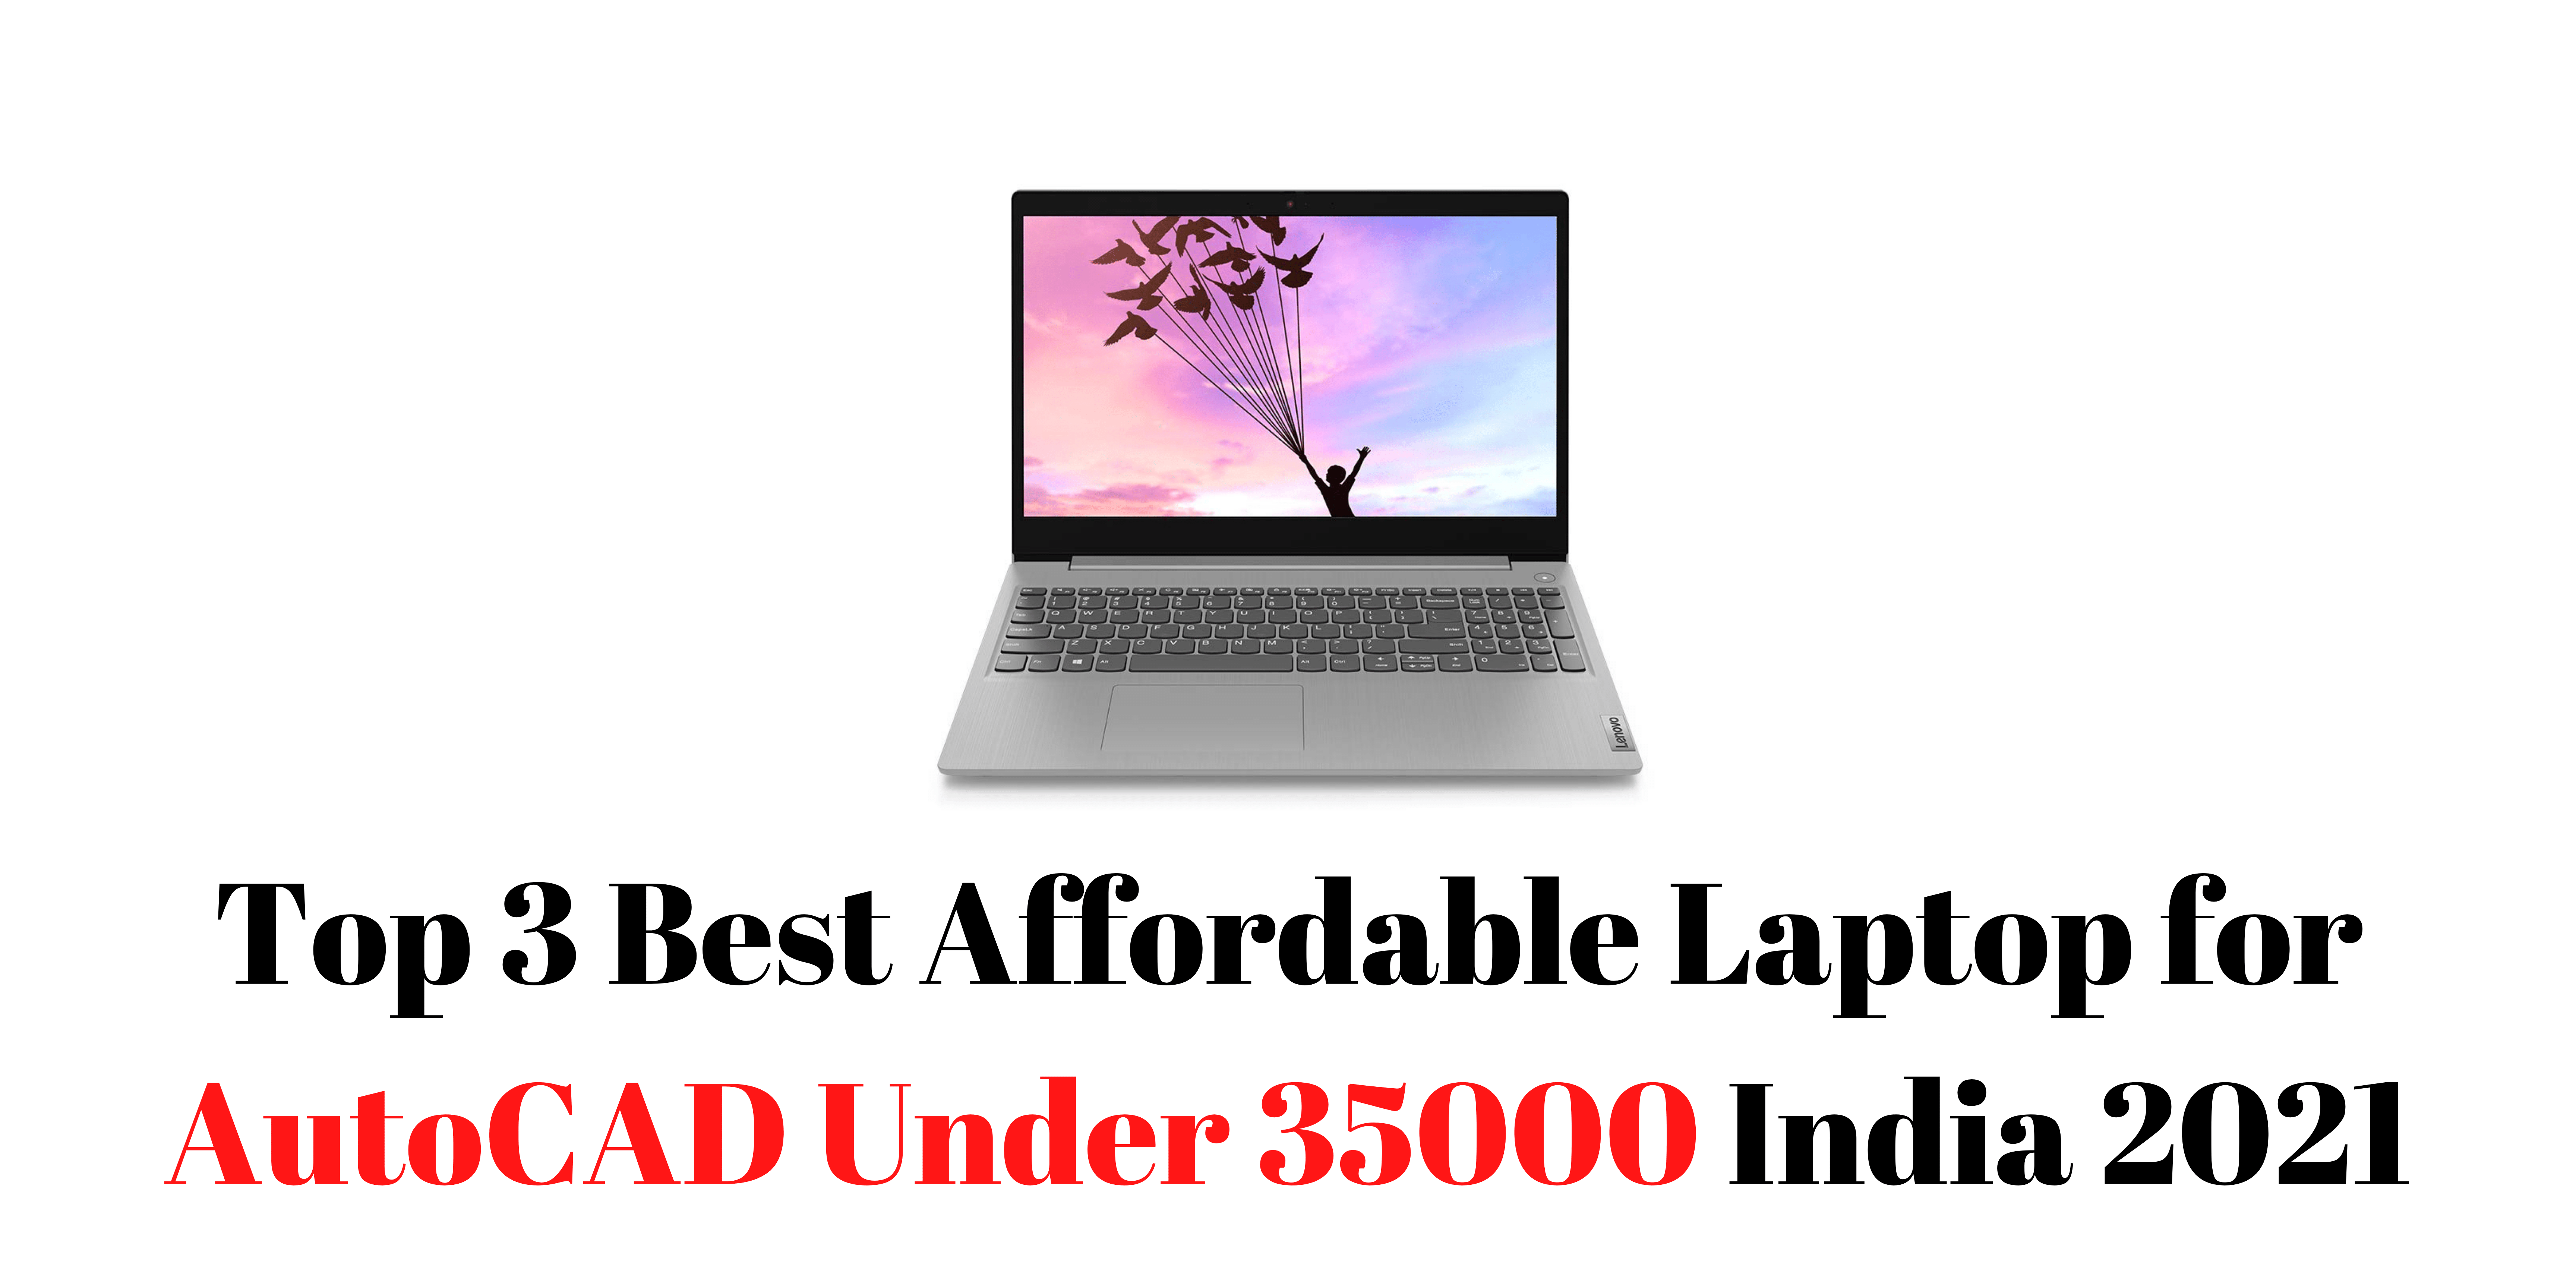 Top 3 Best Affordable Laptop for AutoCAD Under 35000 India 2021